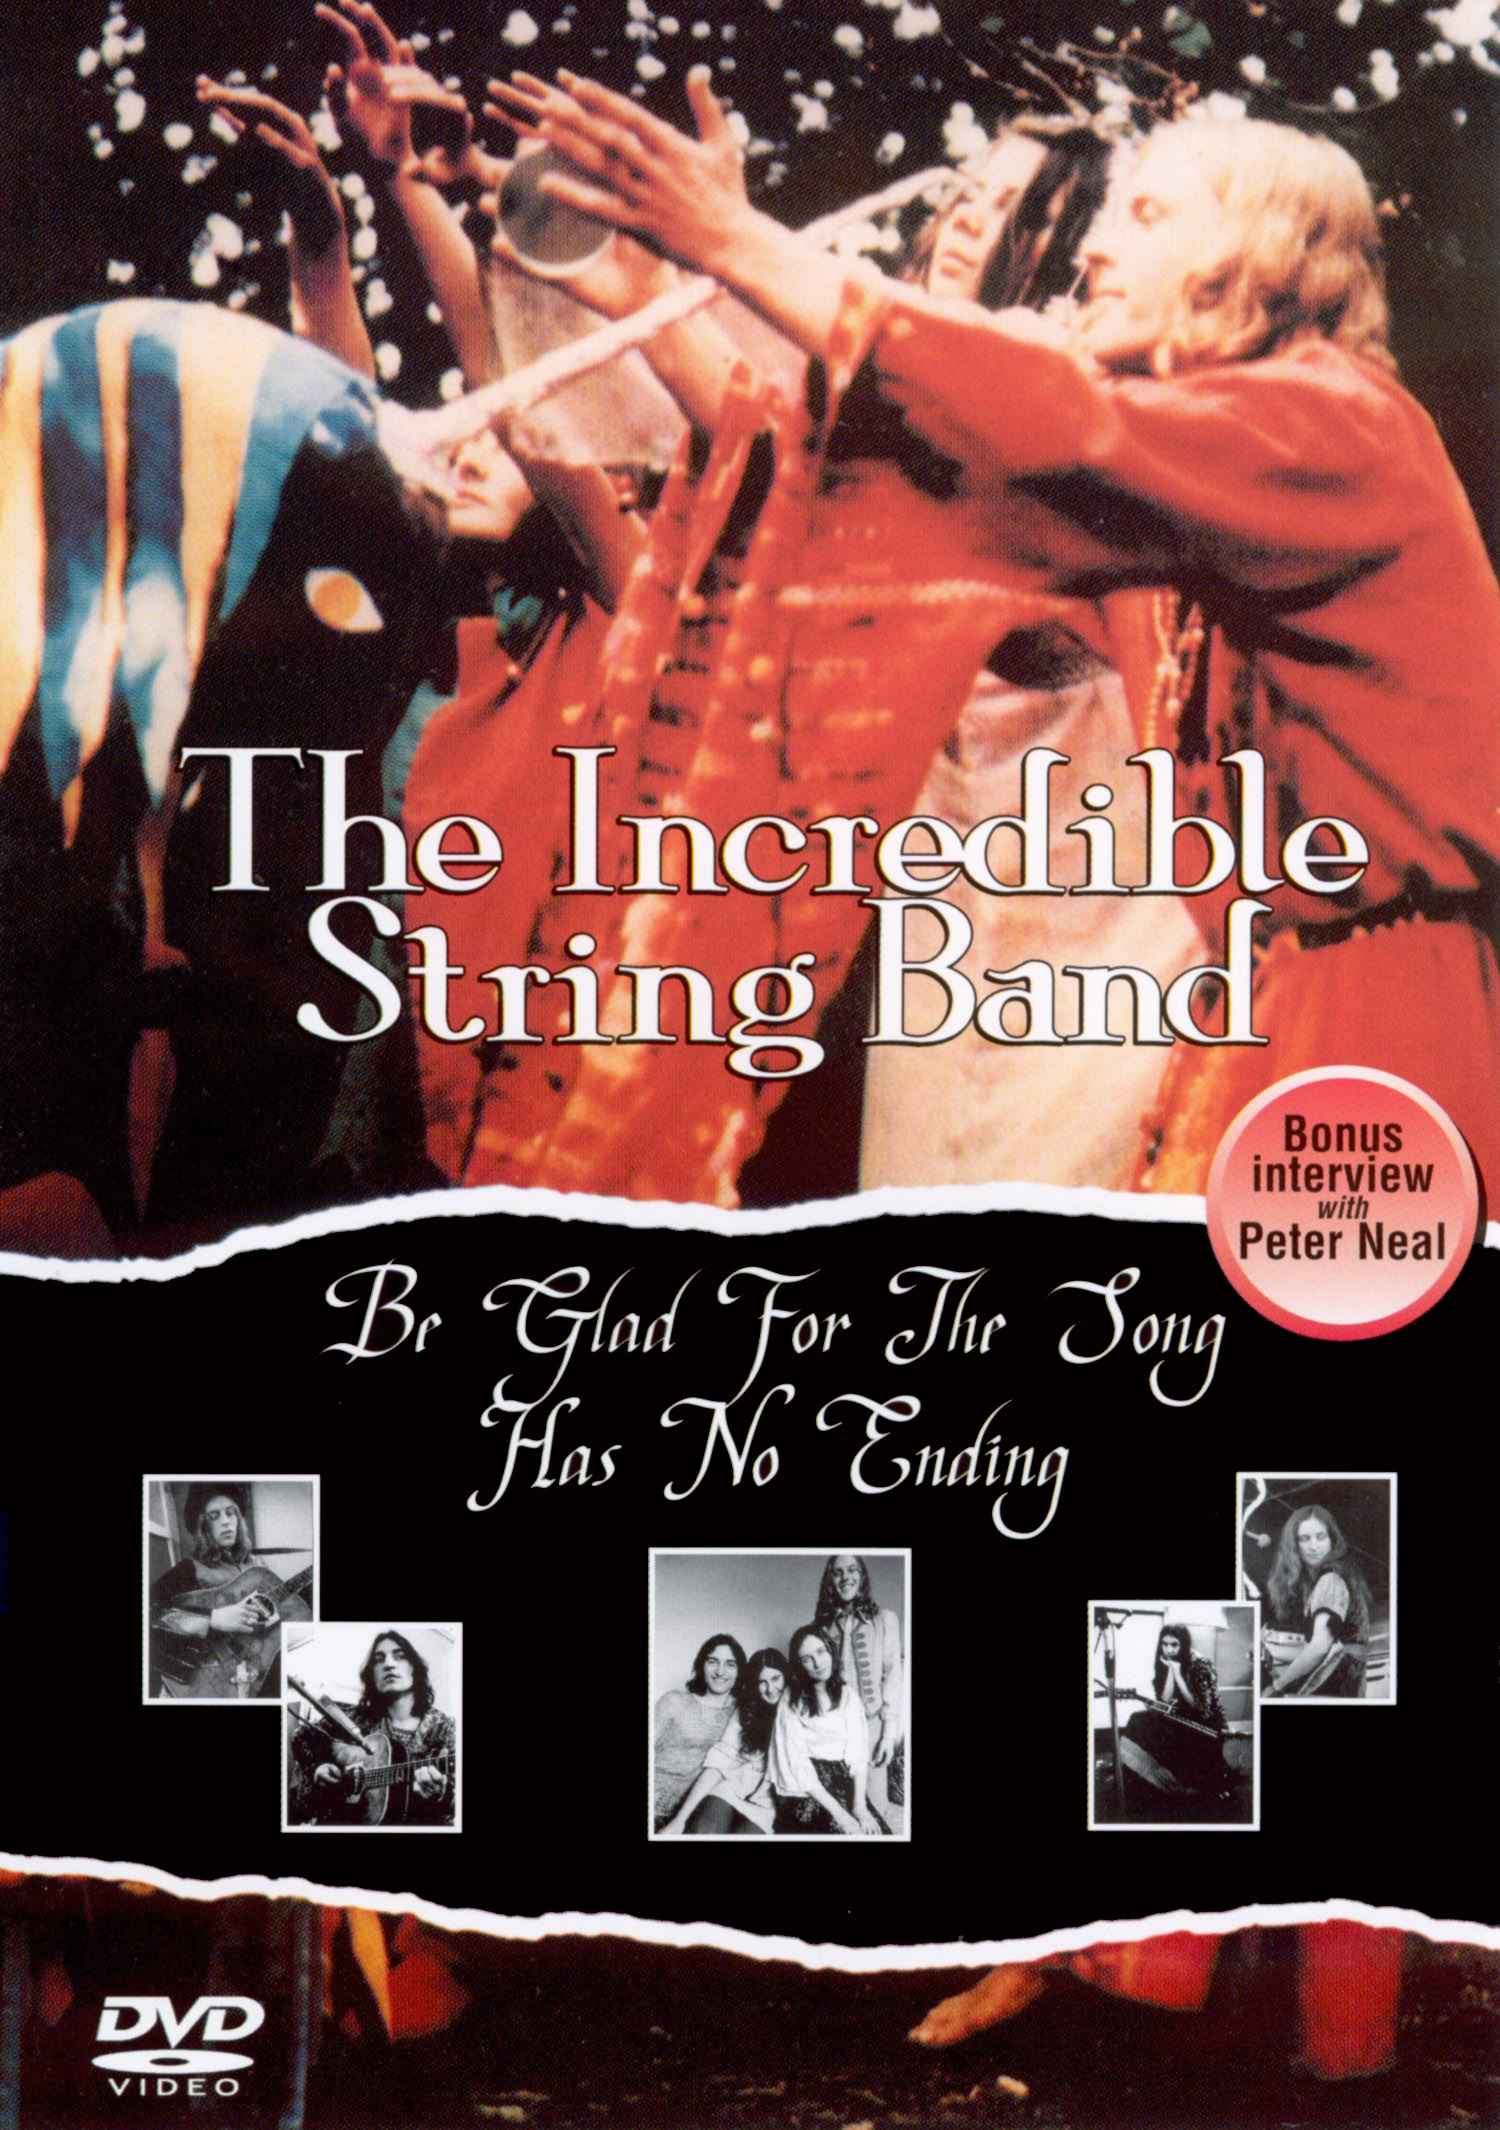 The Incredible String Band: Be Glad For the Song Has No Ending